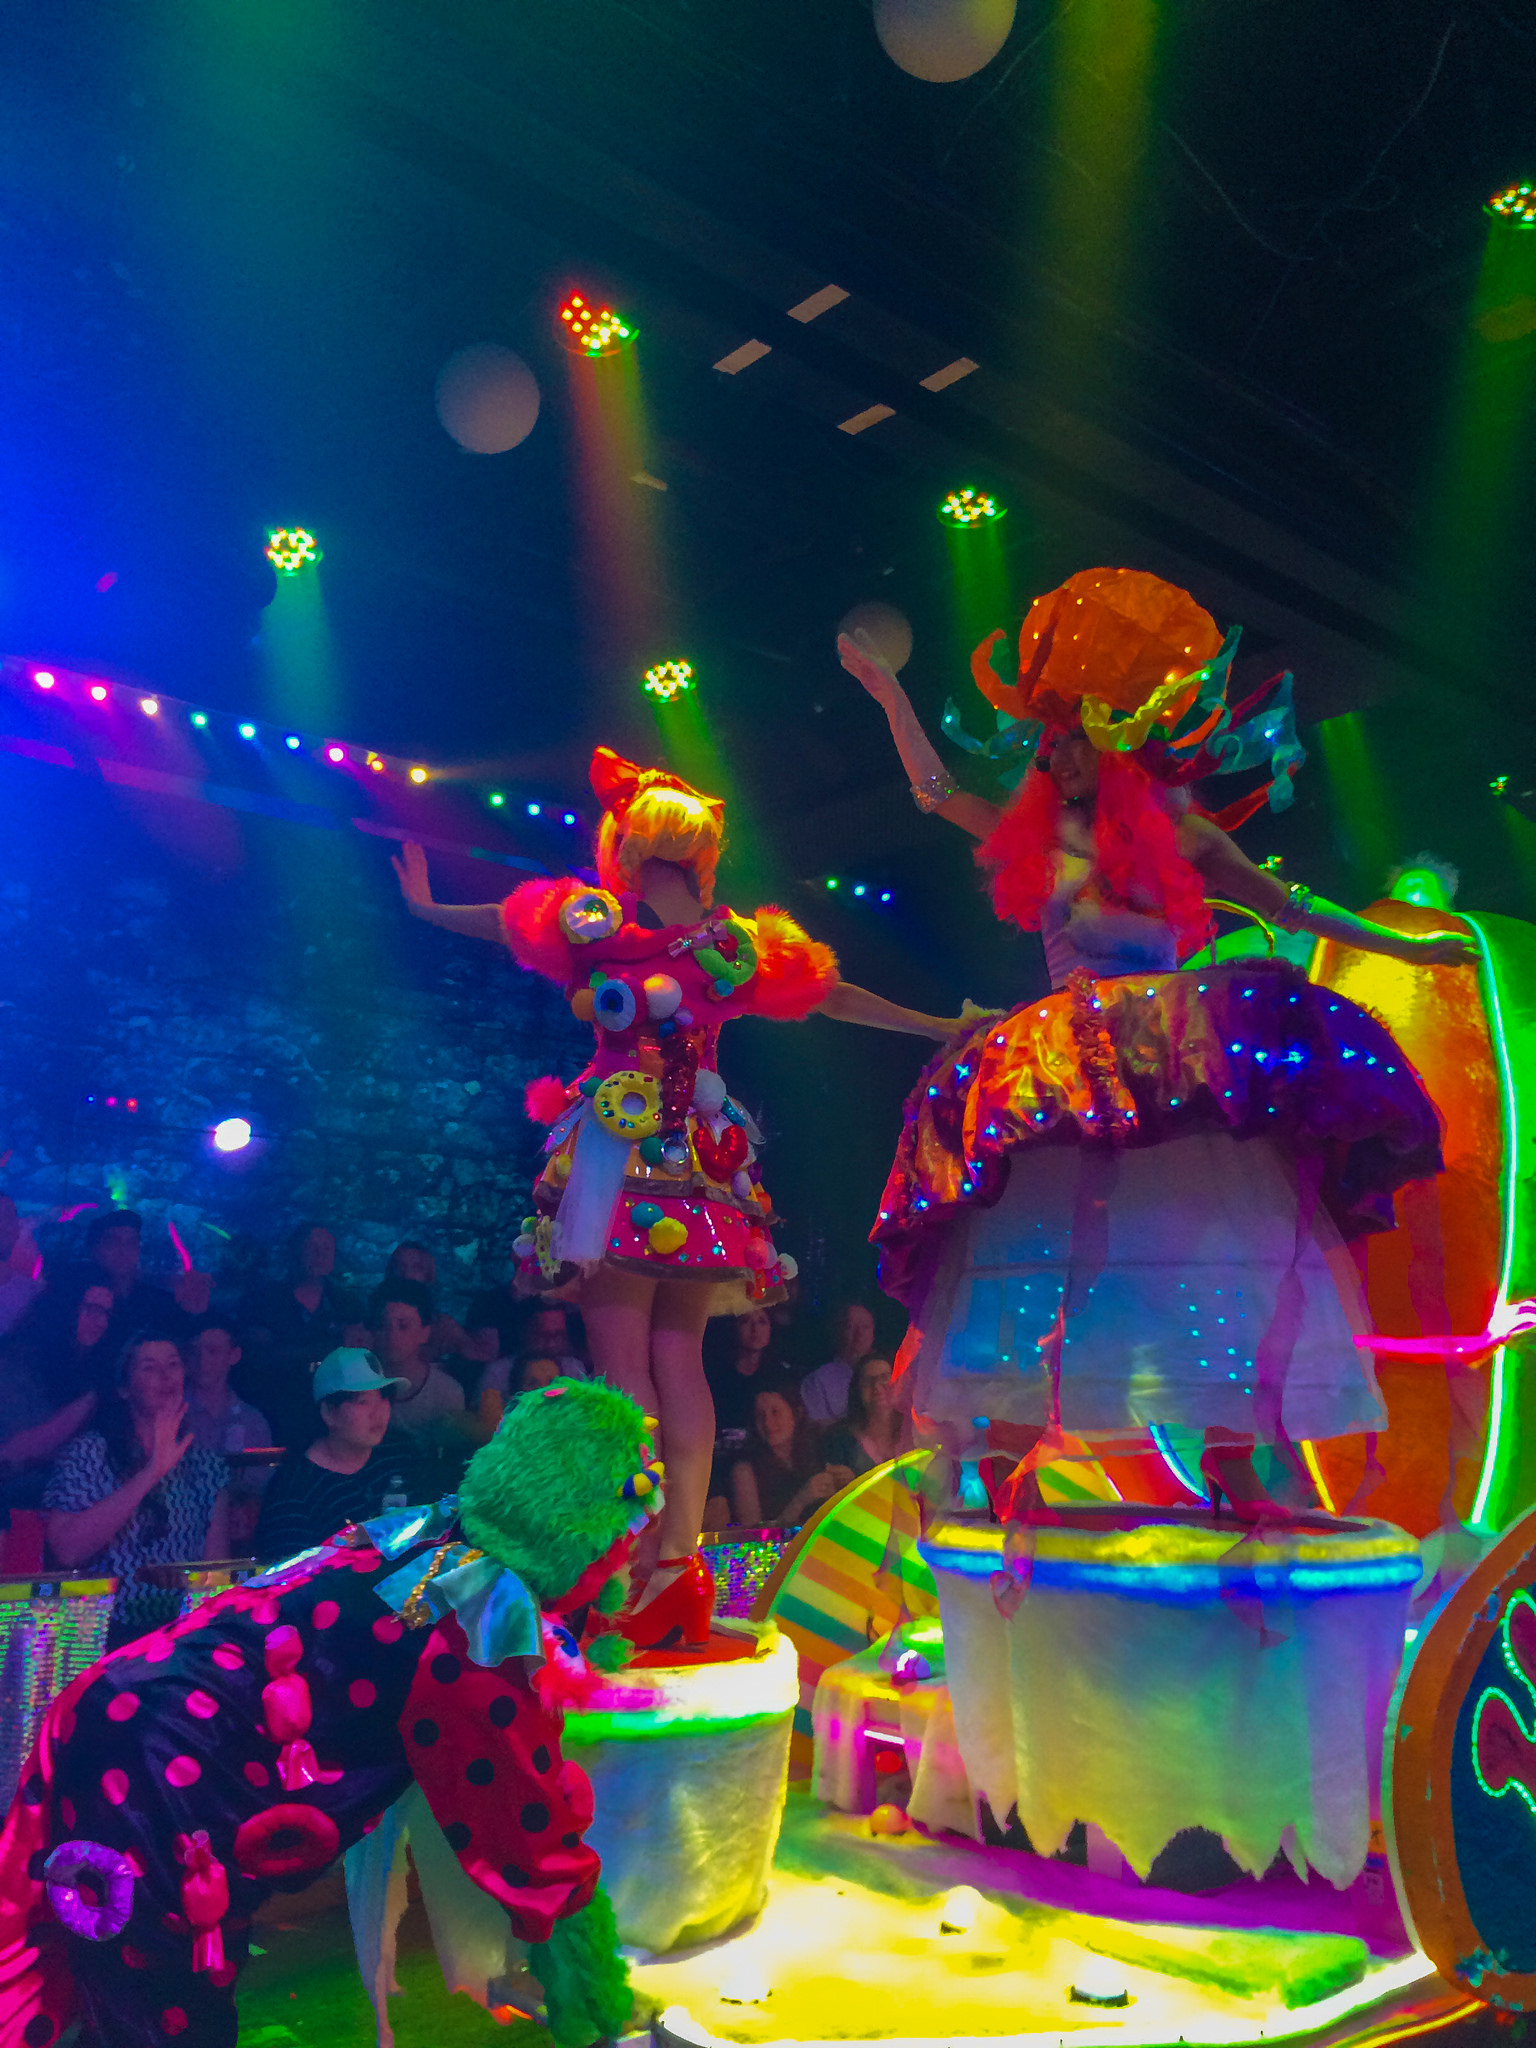 Tokyo Robot Restaurant ExperienceGuide to the Robot Restaurant Experience, the Most Exciting and Exhilarating Show in Tokyo